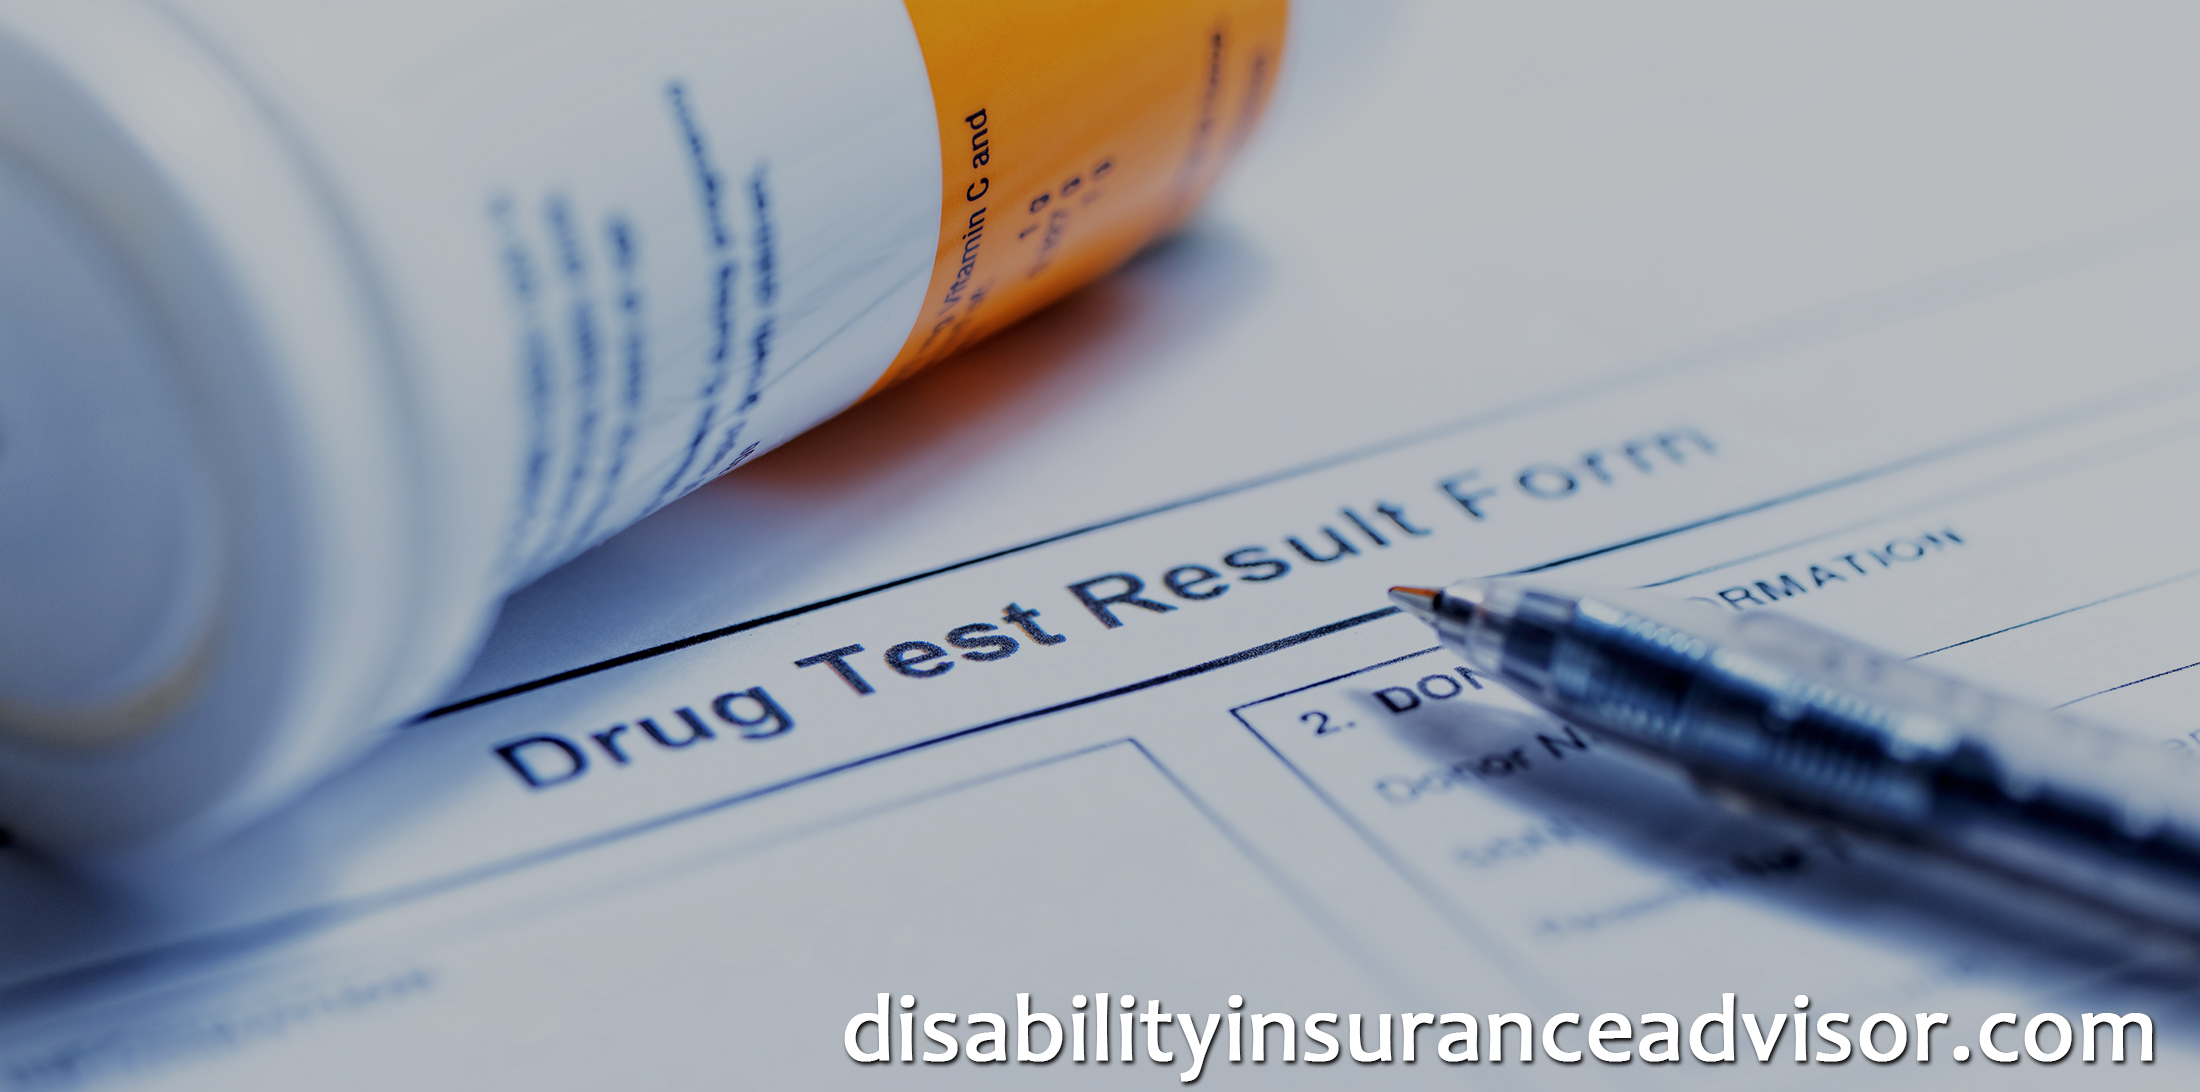 Why Do I Need A Blood And Urine Test To Buy Disability Insurance